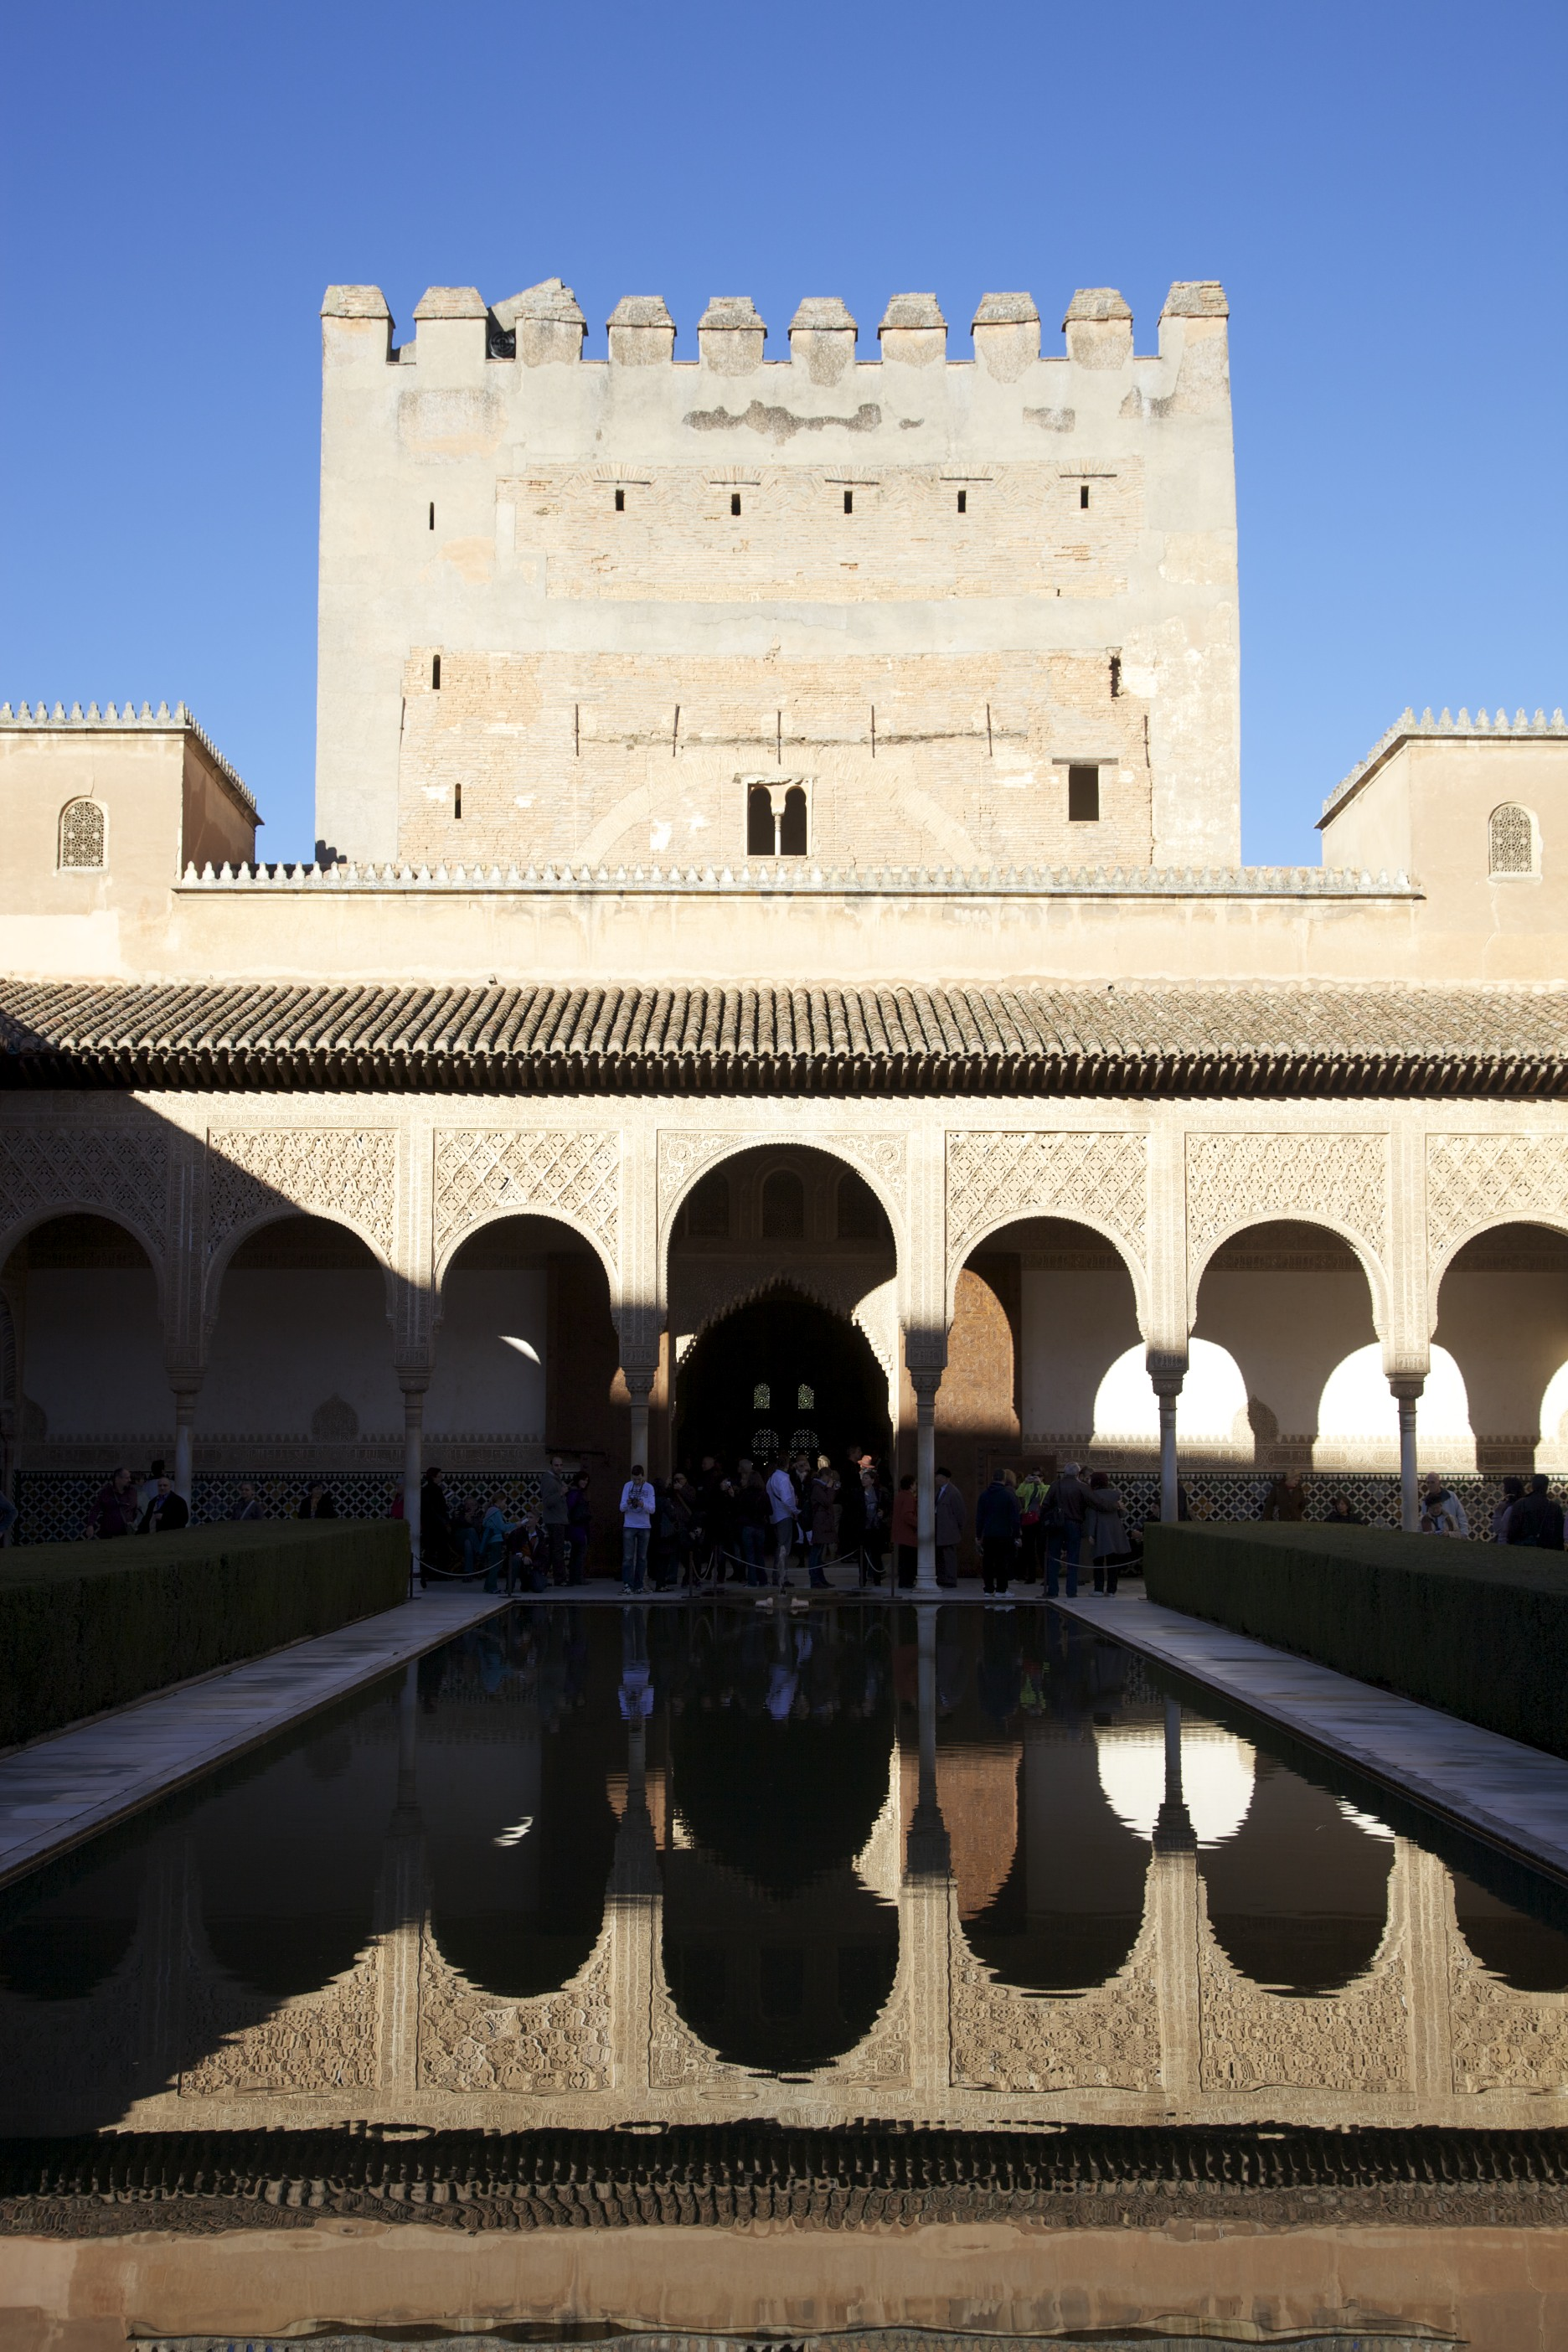 Today at the Alhambra (in Granada).